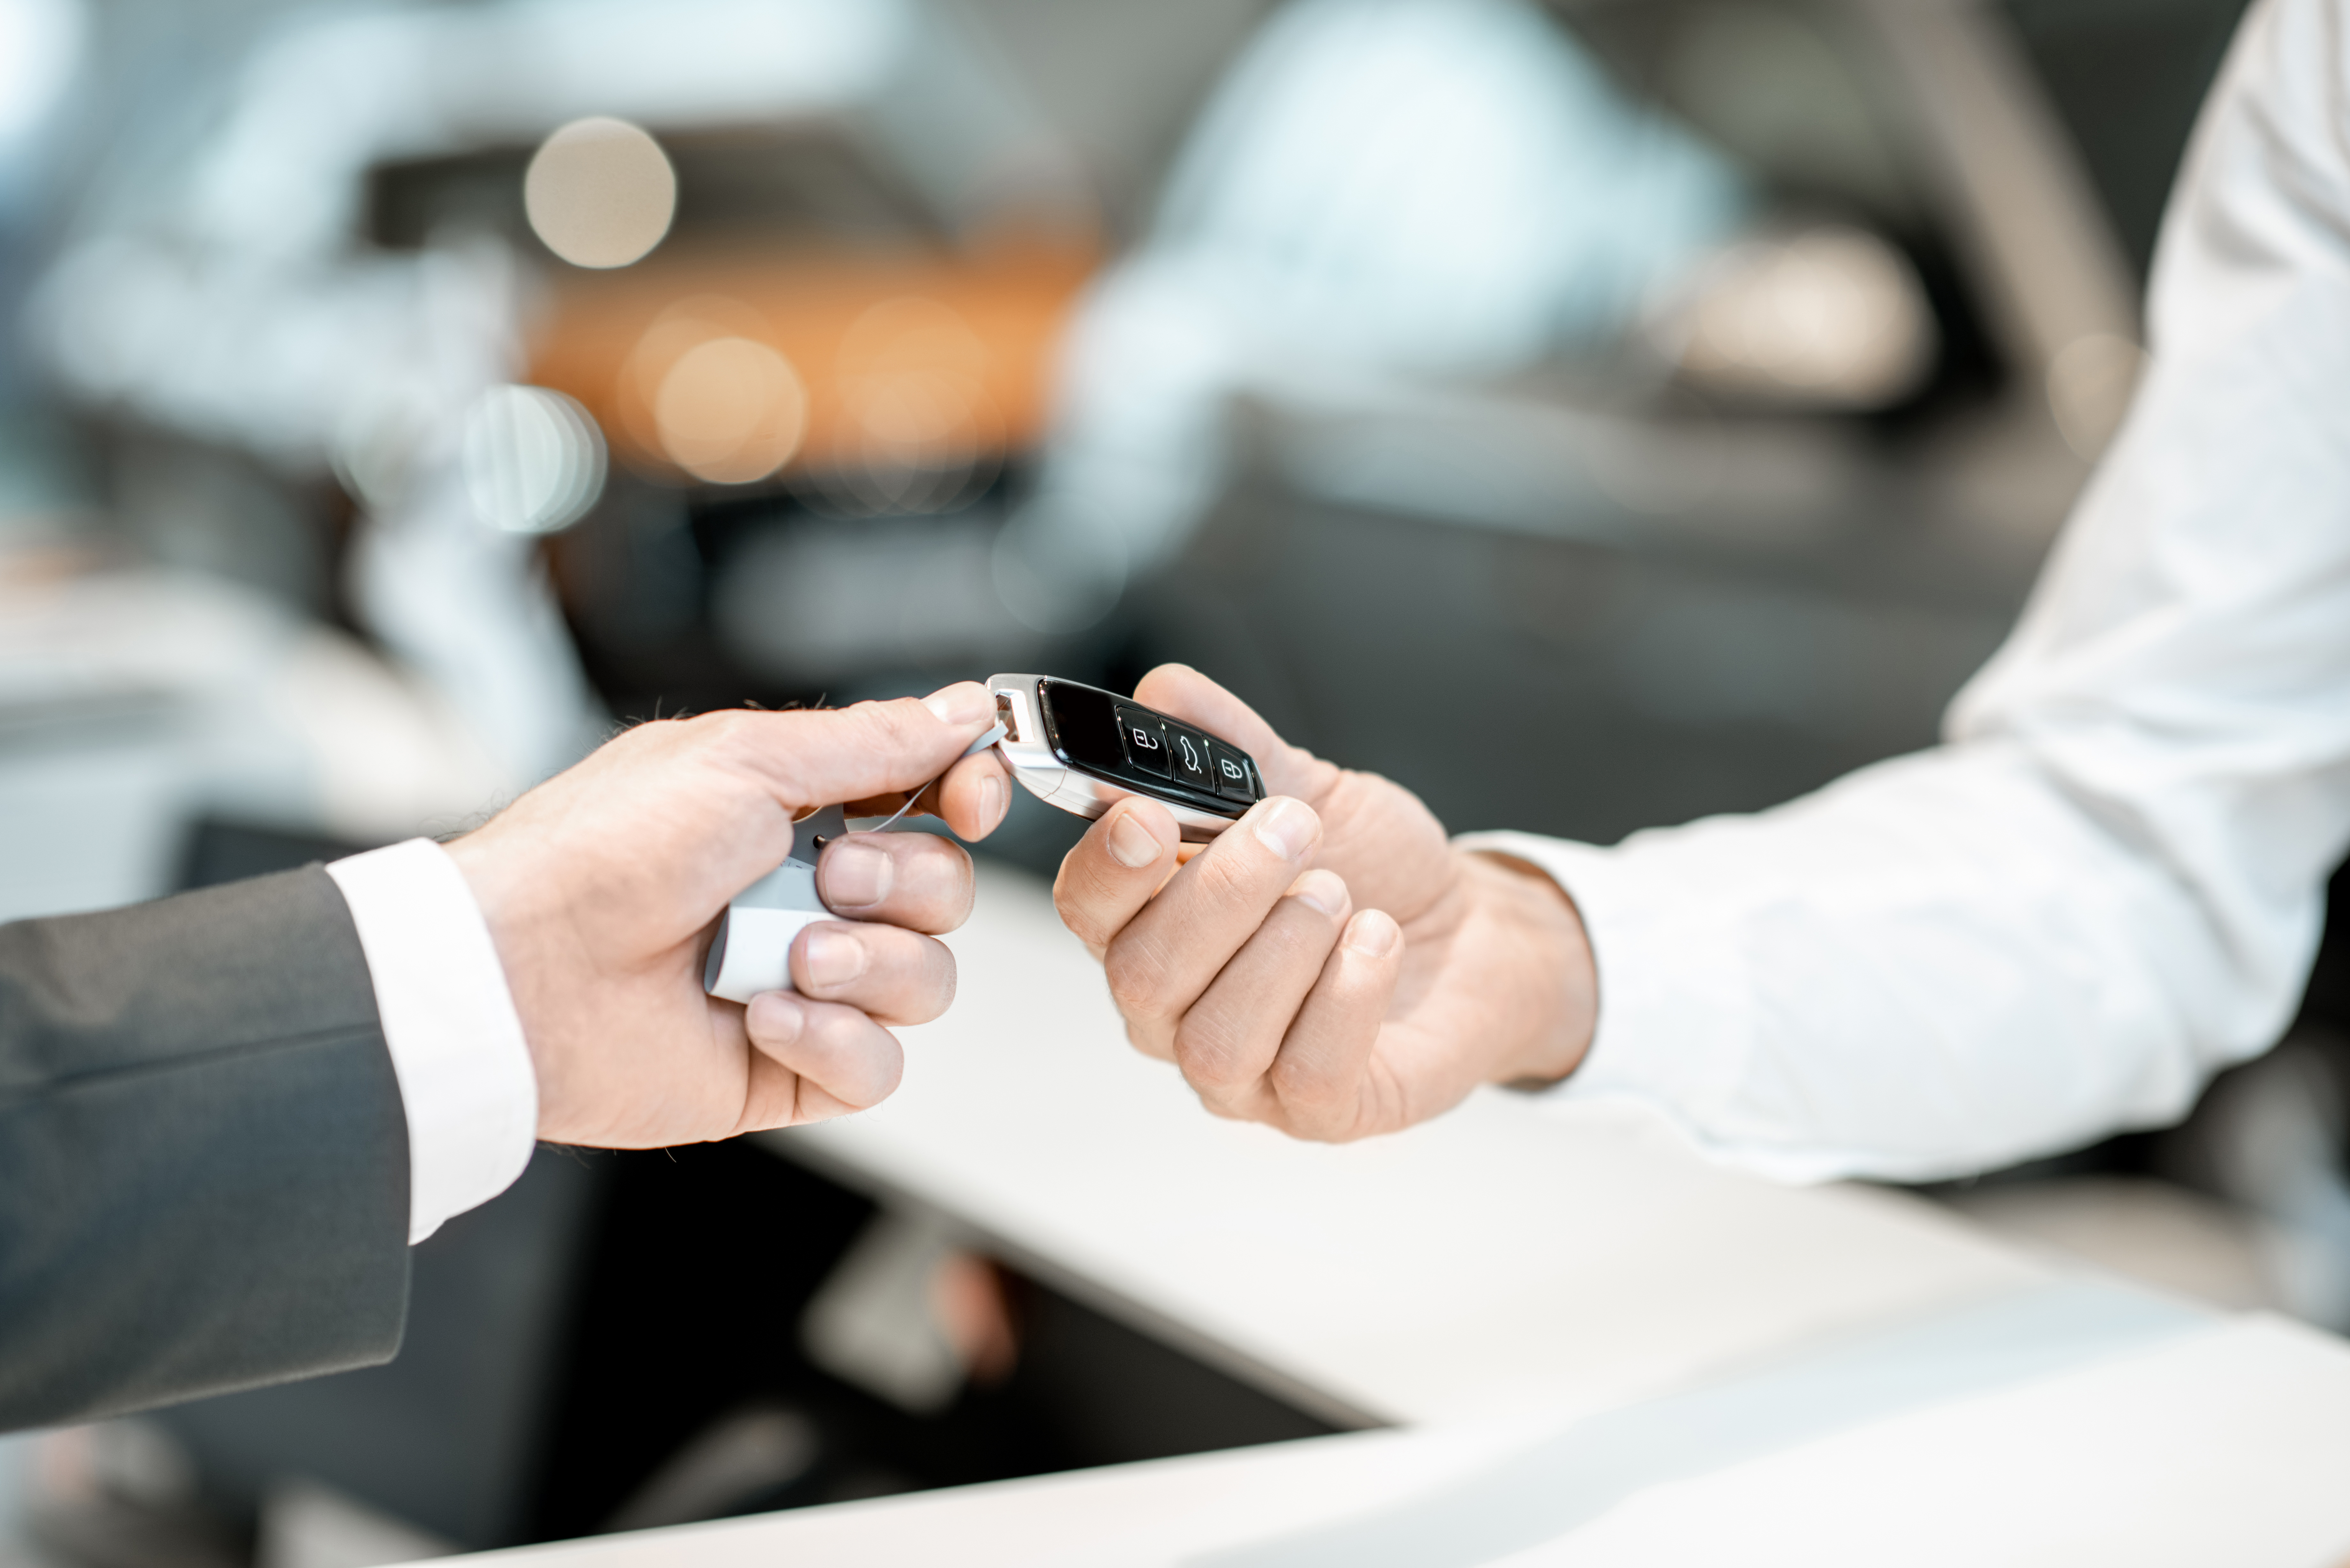 Sufi Offers Auto Financing in Minutes with FICO Software